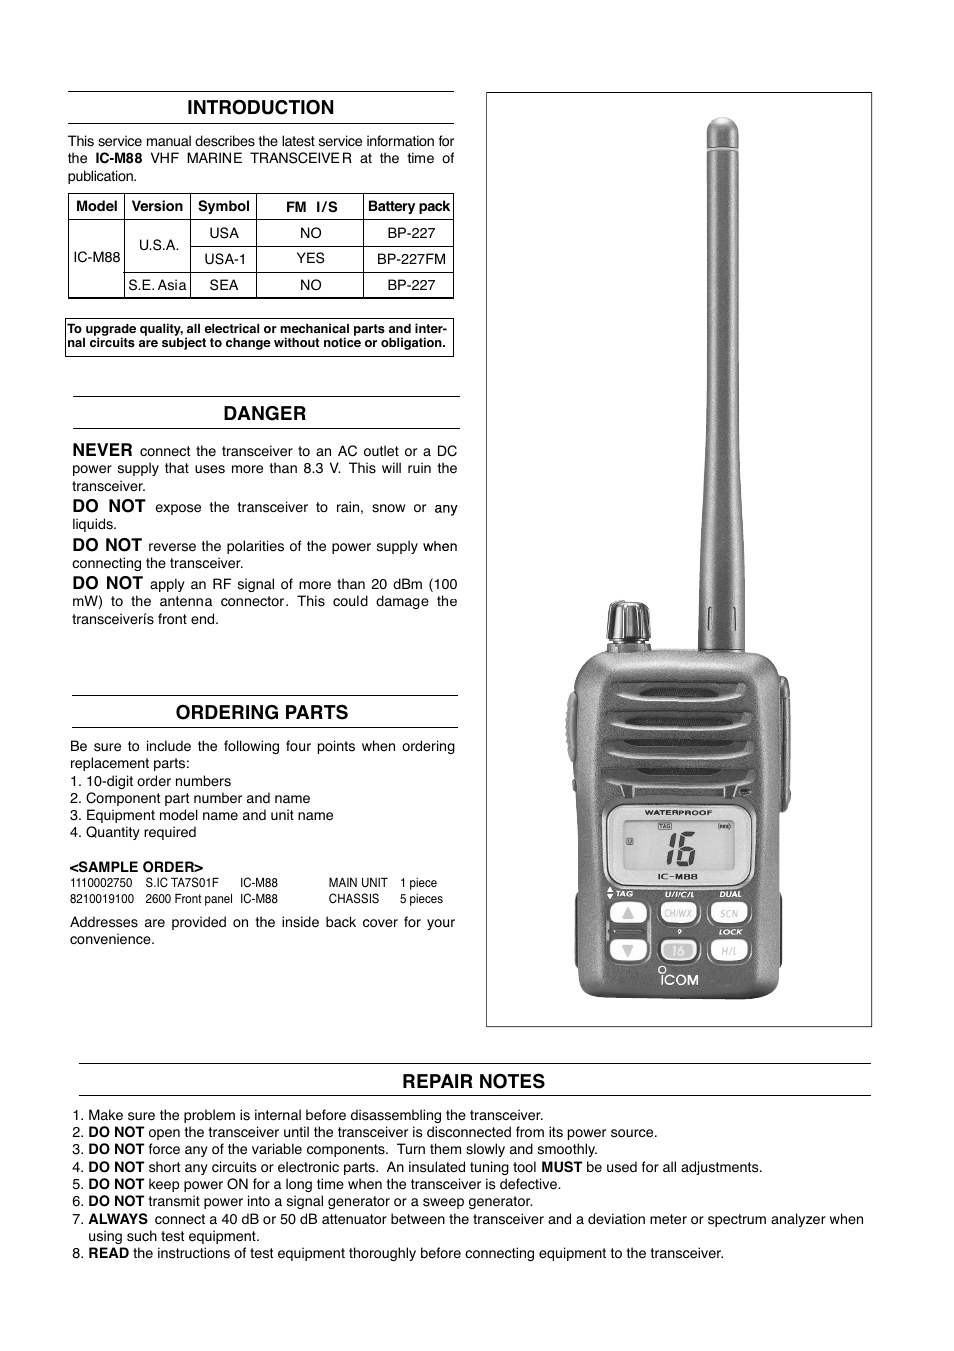 Introduction, Danger, Ordering parts | Icom VHF Marine Transceiver IC-M88  User Manual | Page 2 / 38